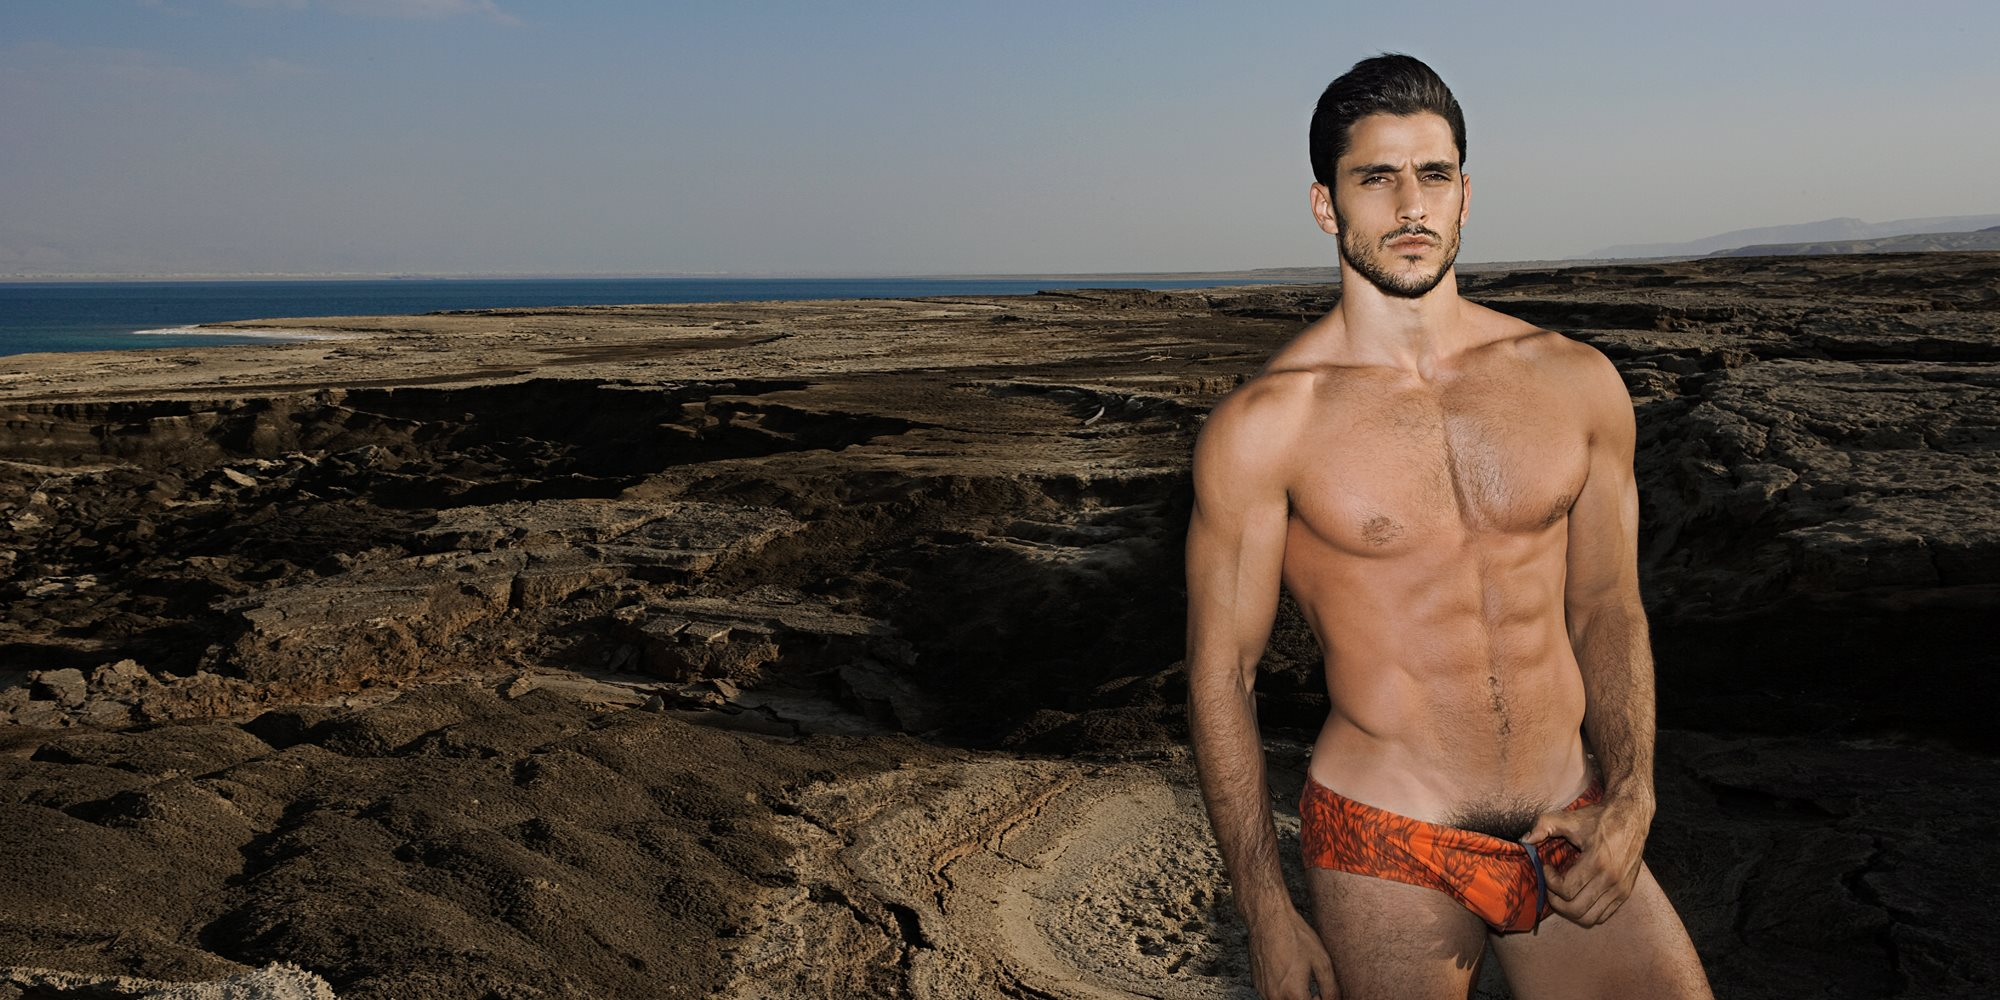 Brief Distraction featuring C-IN2 Swimwear